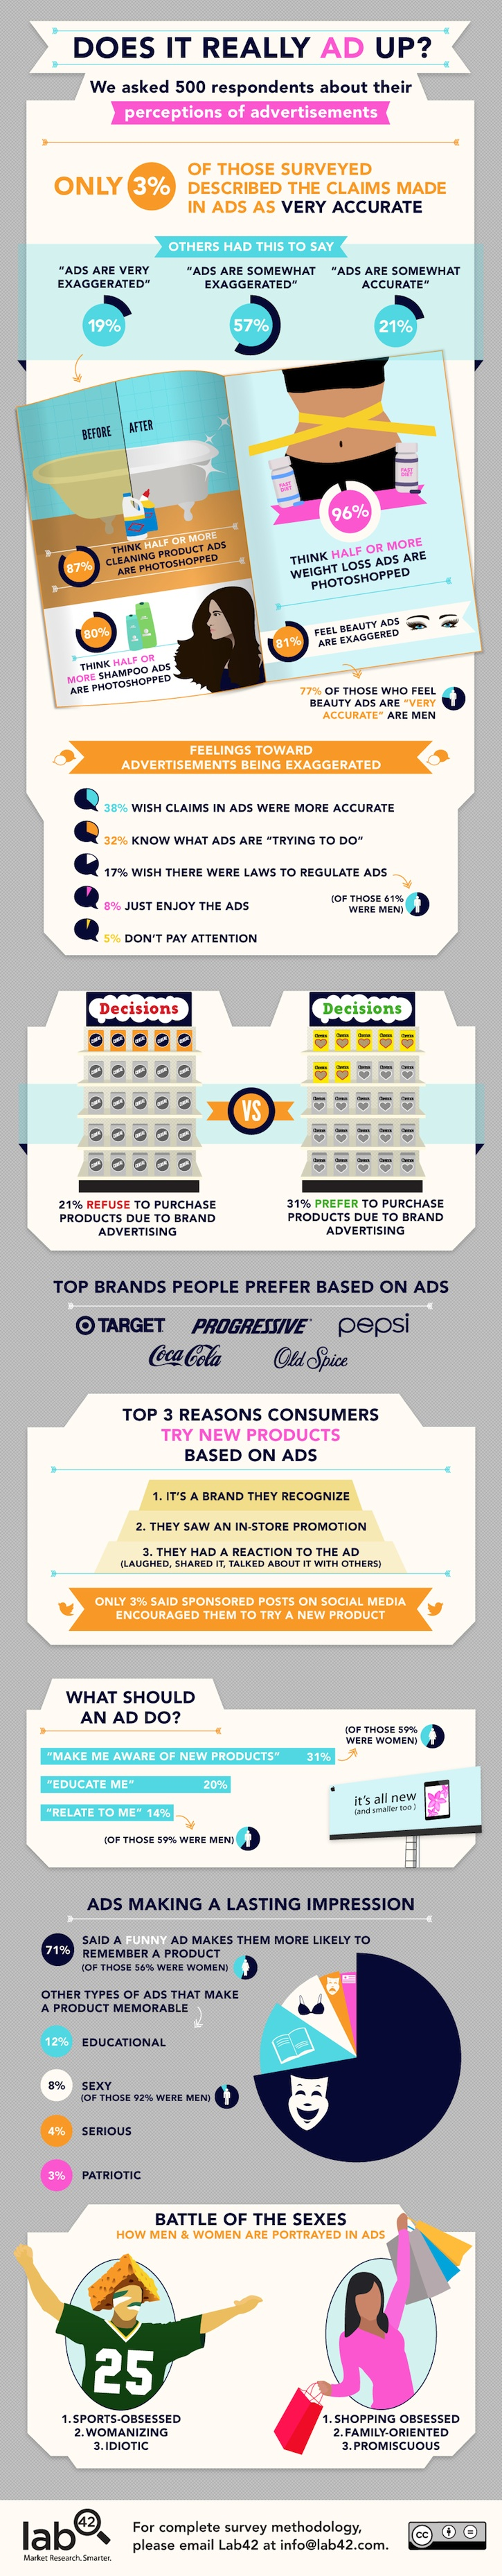 Advertising Credibility Infographic